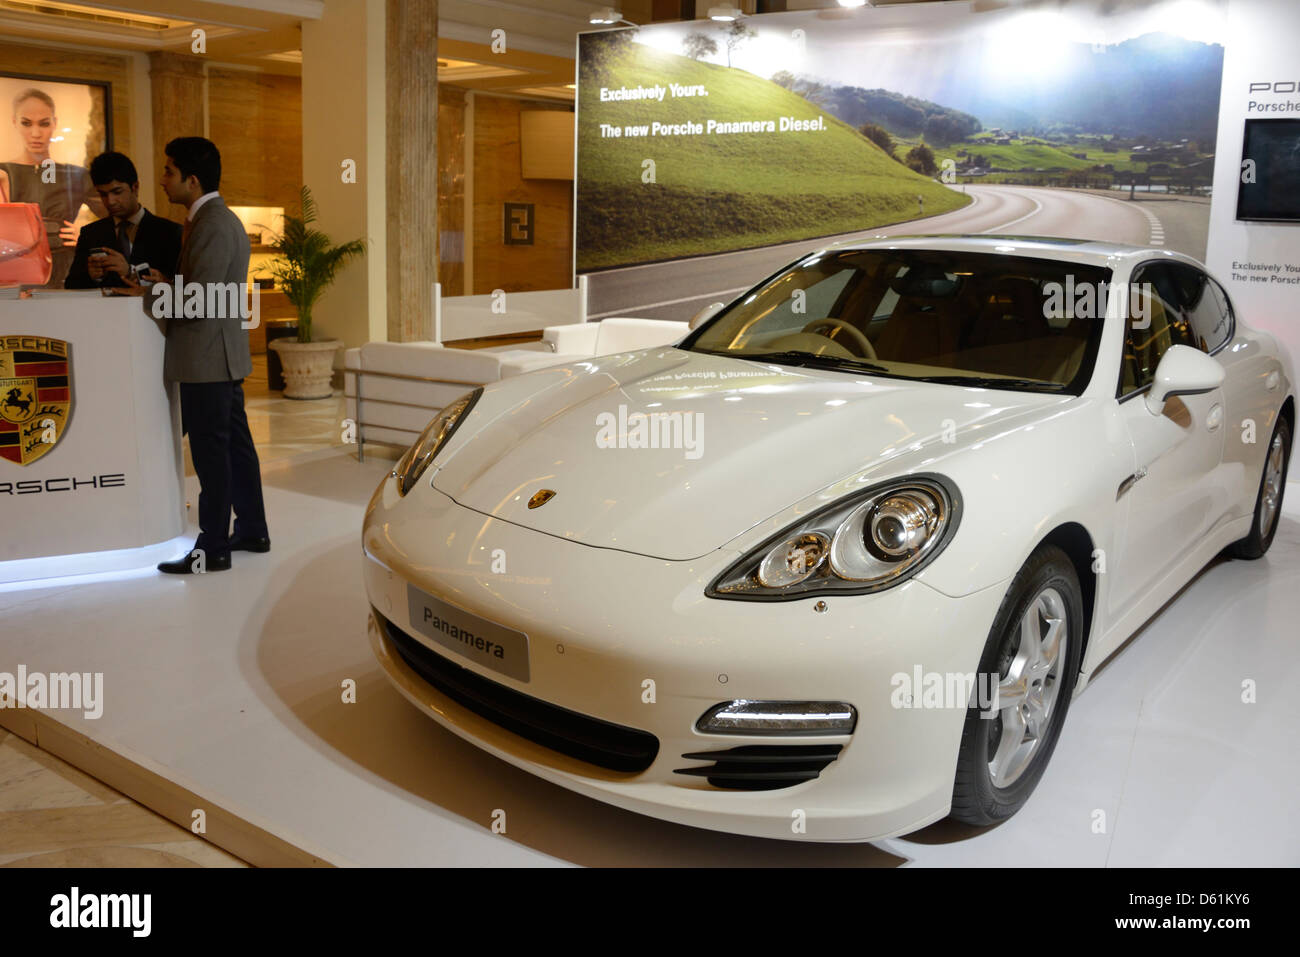 A Porsche Sports Car On Display With A Sale At The Dlf Emporio